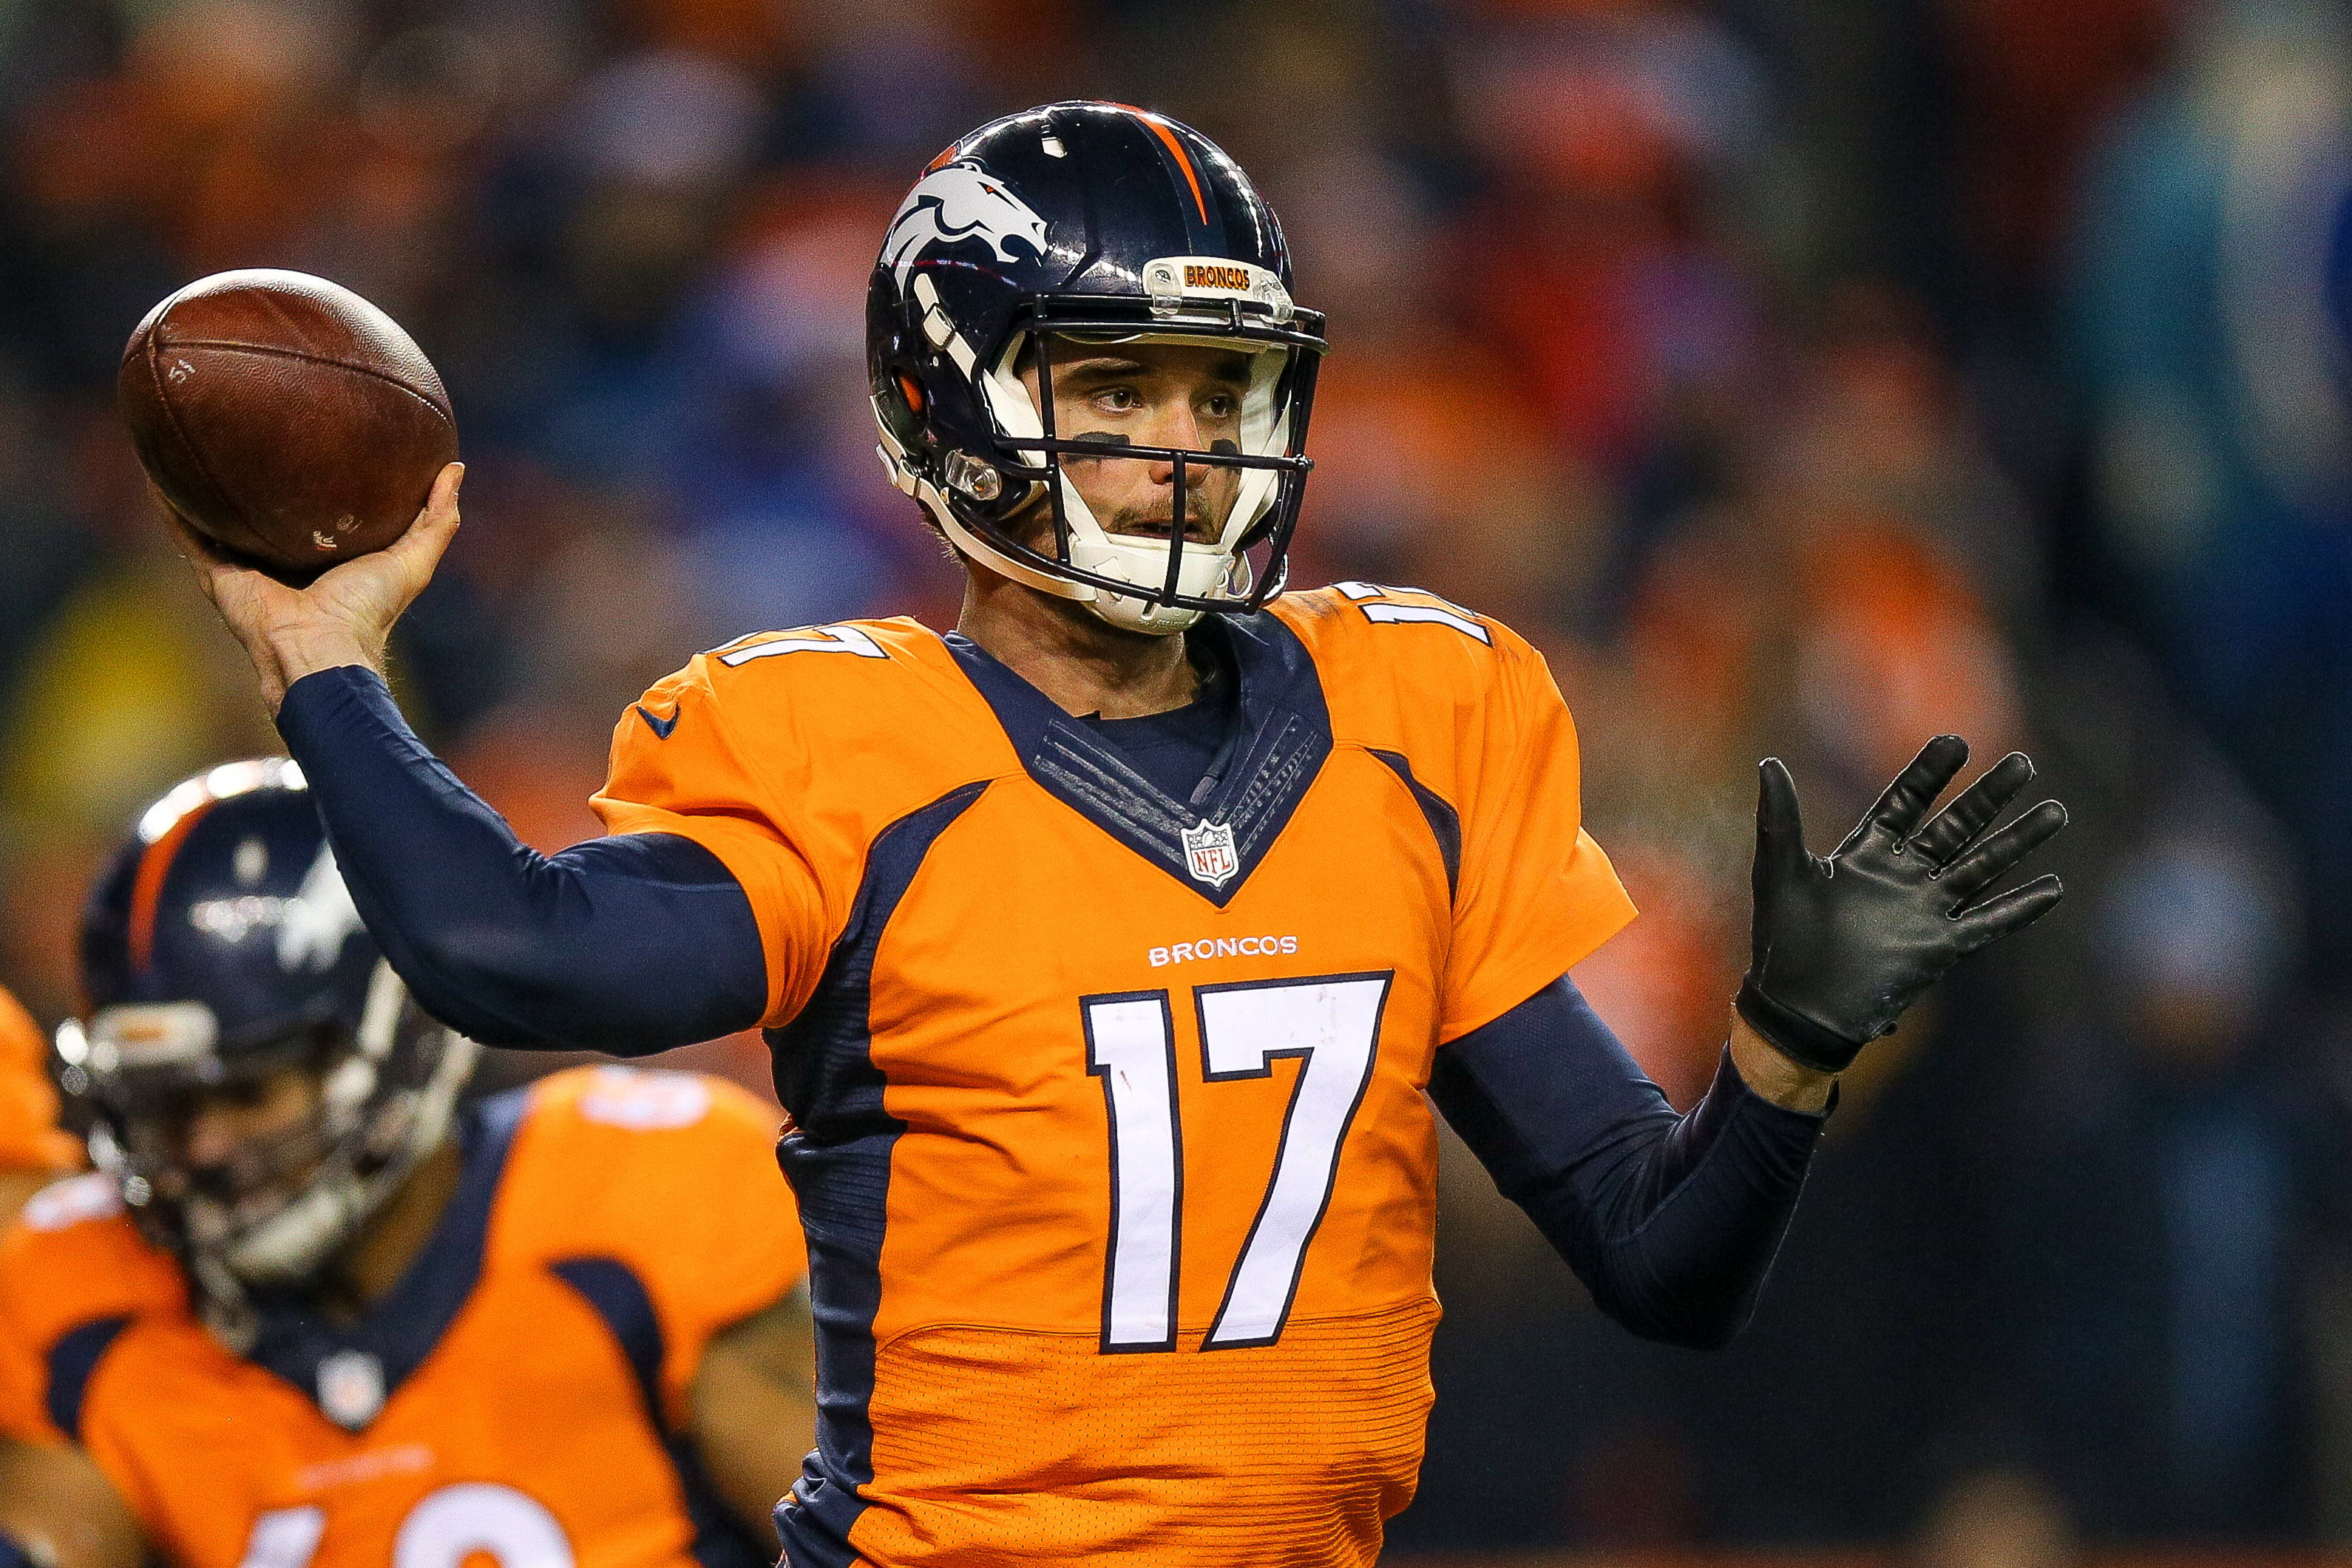 Quarterback Brock Osweiler #17 of the Denver Broncos passes against the Cincinnati Bengals during a game at Sports Authority Field at Mile High on December 28, 2015 in Denver, Colorado. (Photo by Justin Edmonds/Getty Images)